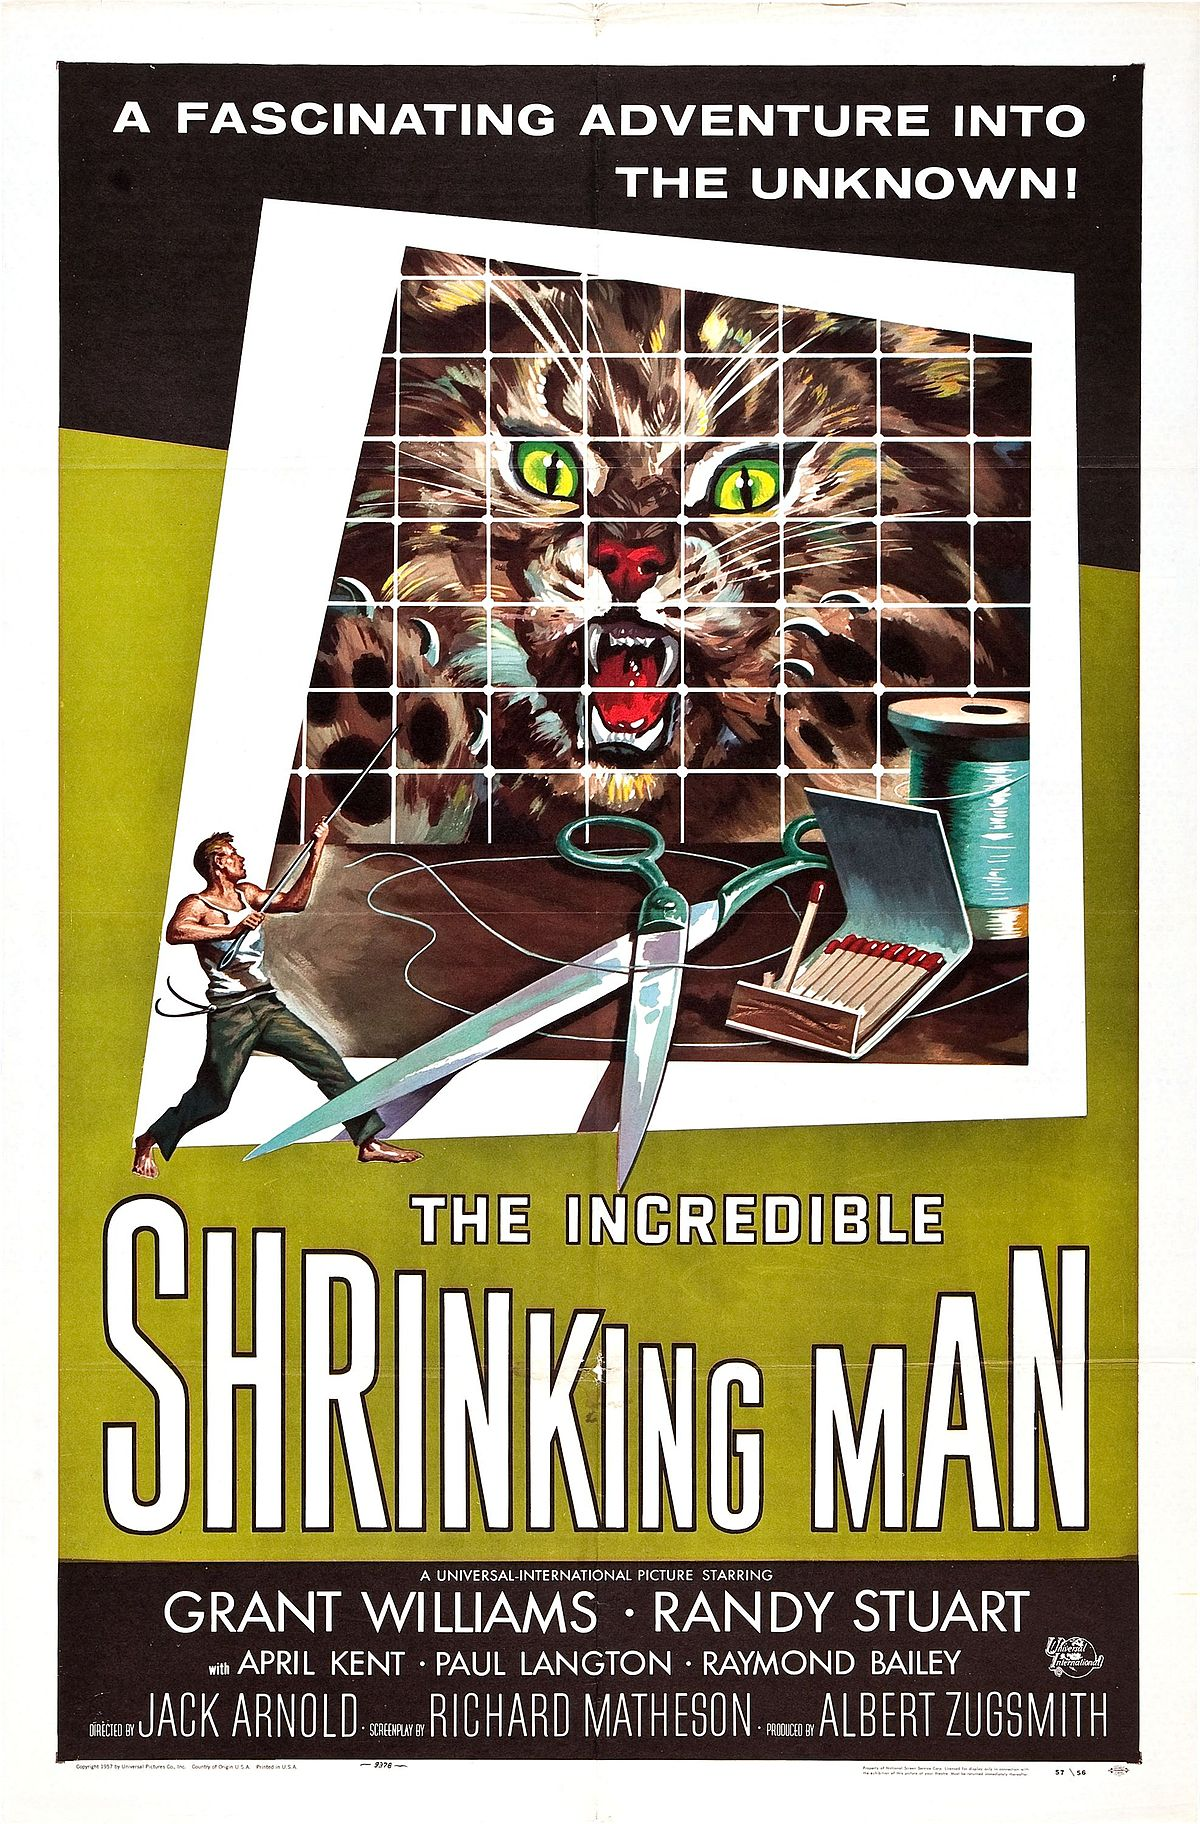 Incredibles Sex Stories Ideal the incredible shrinking man - wikipedia